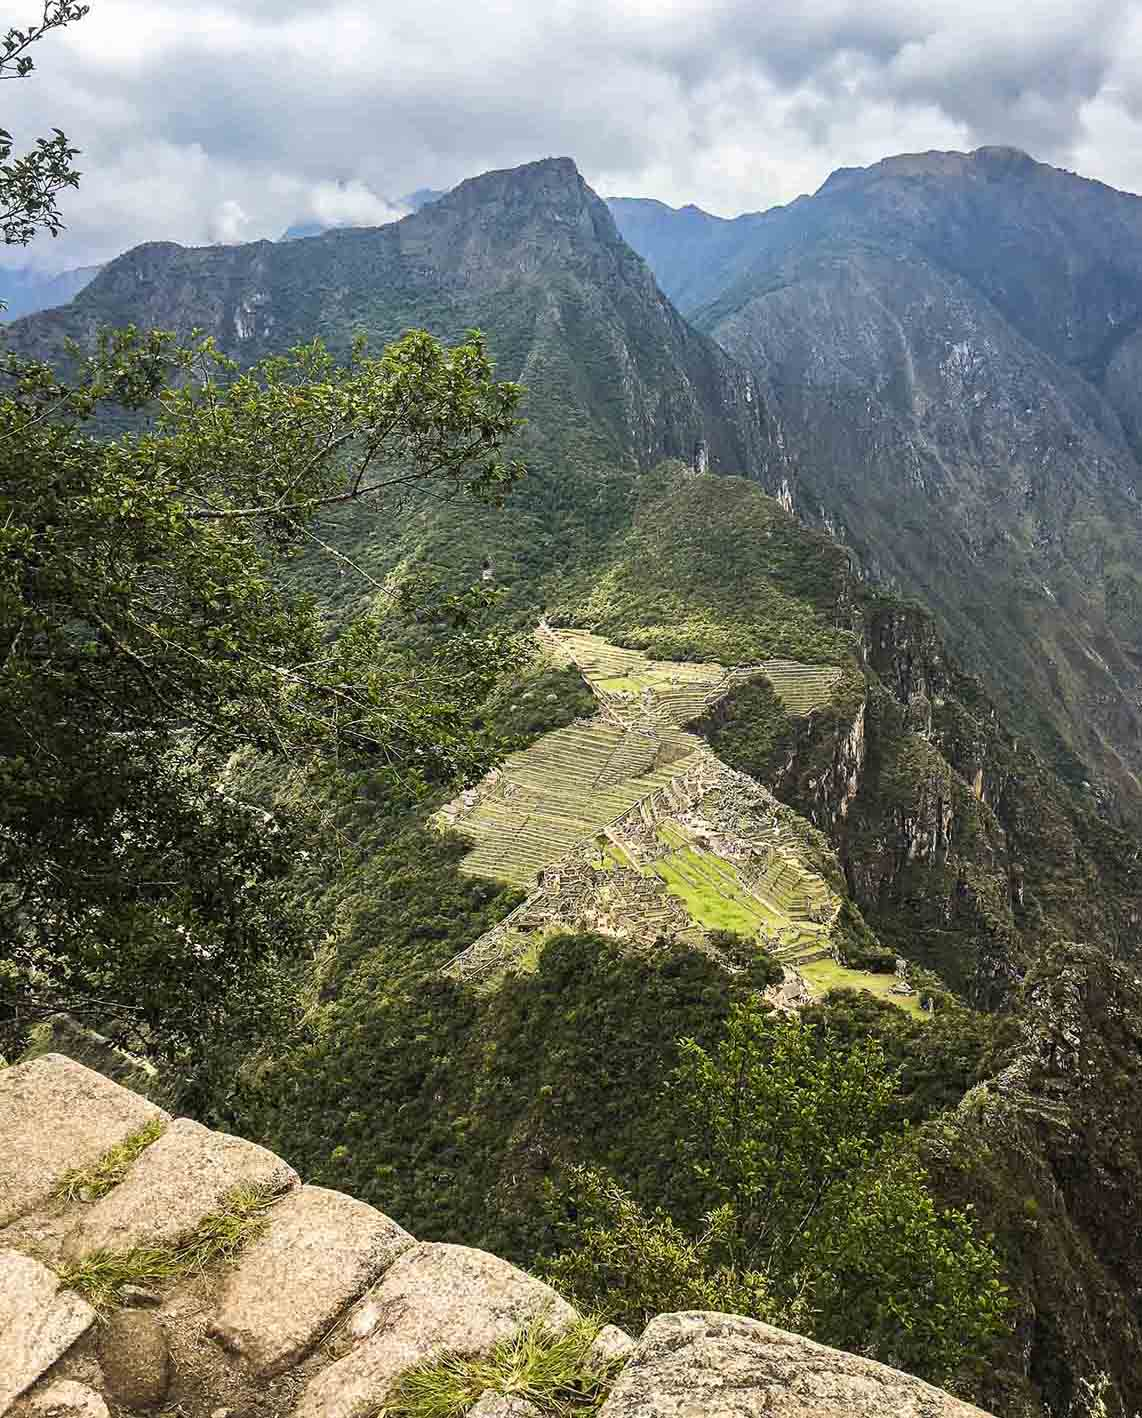 The tall mountain of Machu Picchu as seen from the Huayna Picchu summit on a cloudy day.